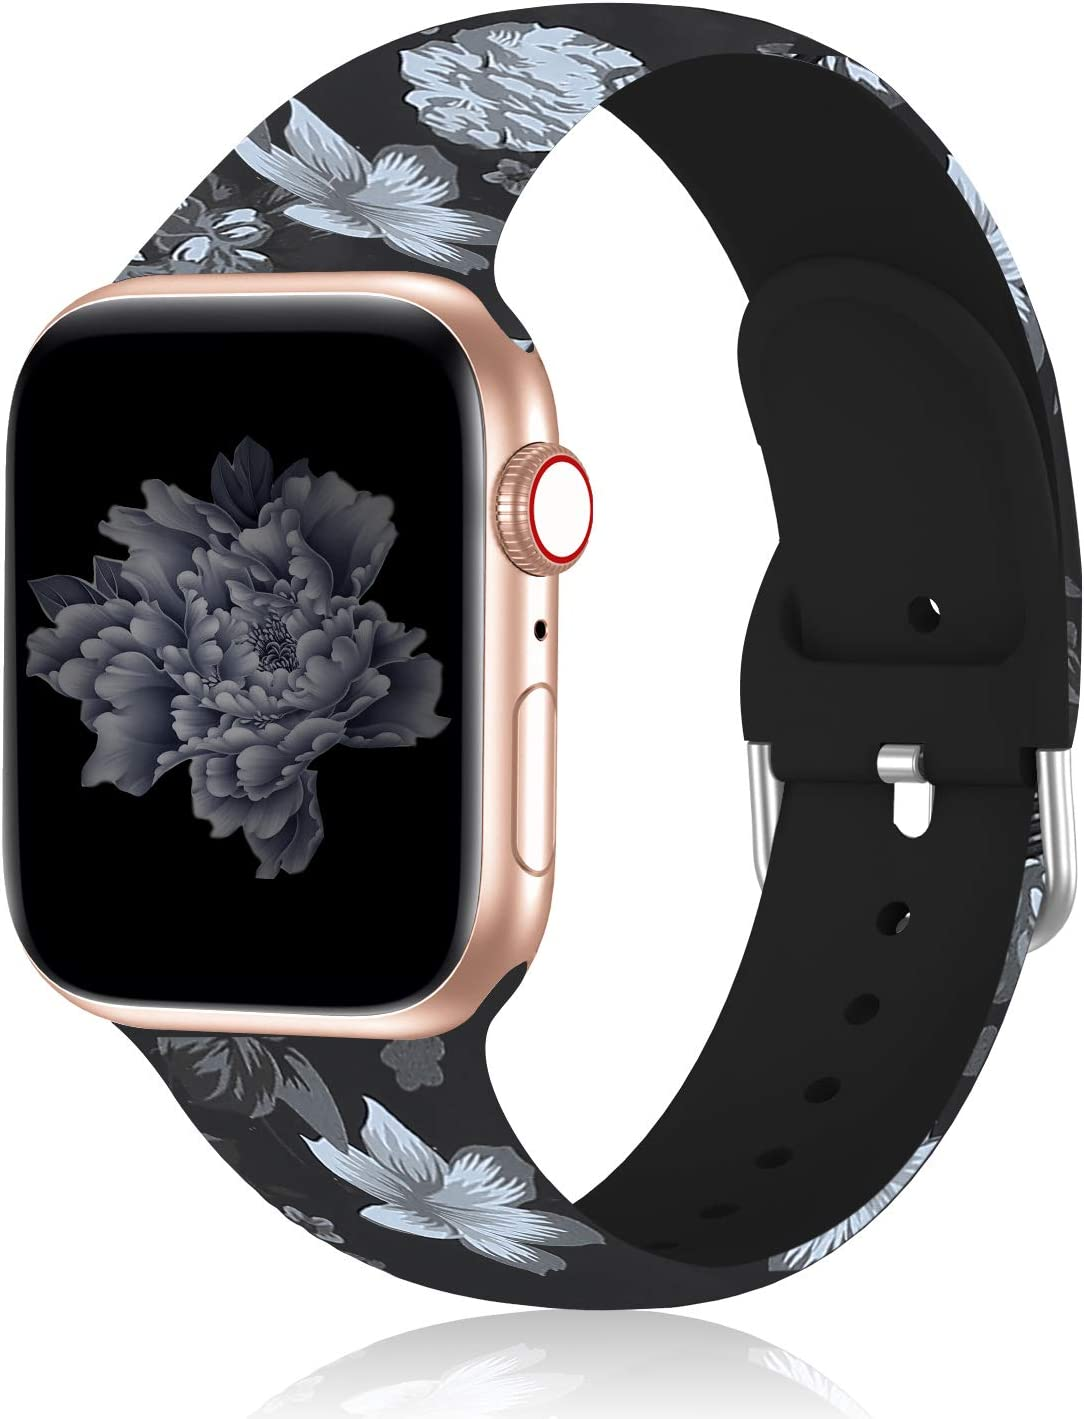 Seizehe Compatible with Apple Watch Band 38mm 40mm Series 3 Series 5, Silicone Floral Pattern iWatch Bands 38mm 40mm Womens Compatible for iWatch SE Series 6 5 4 3 2 1